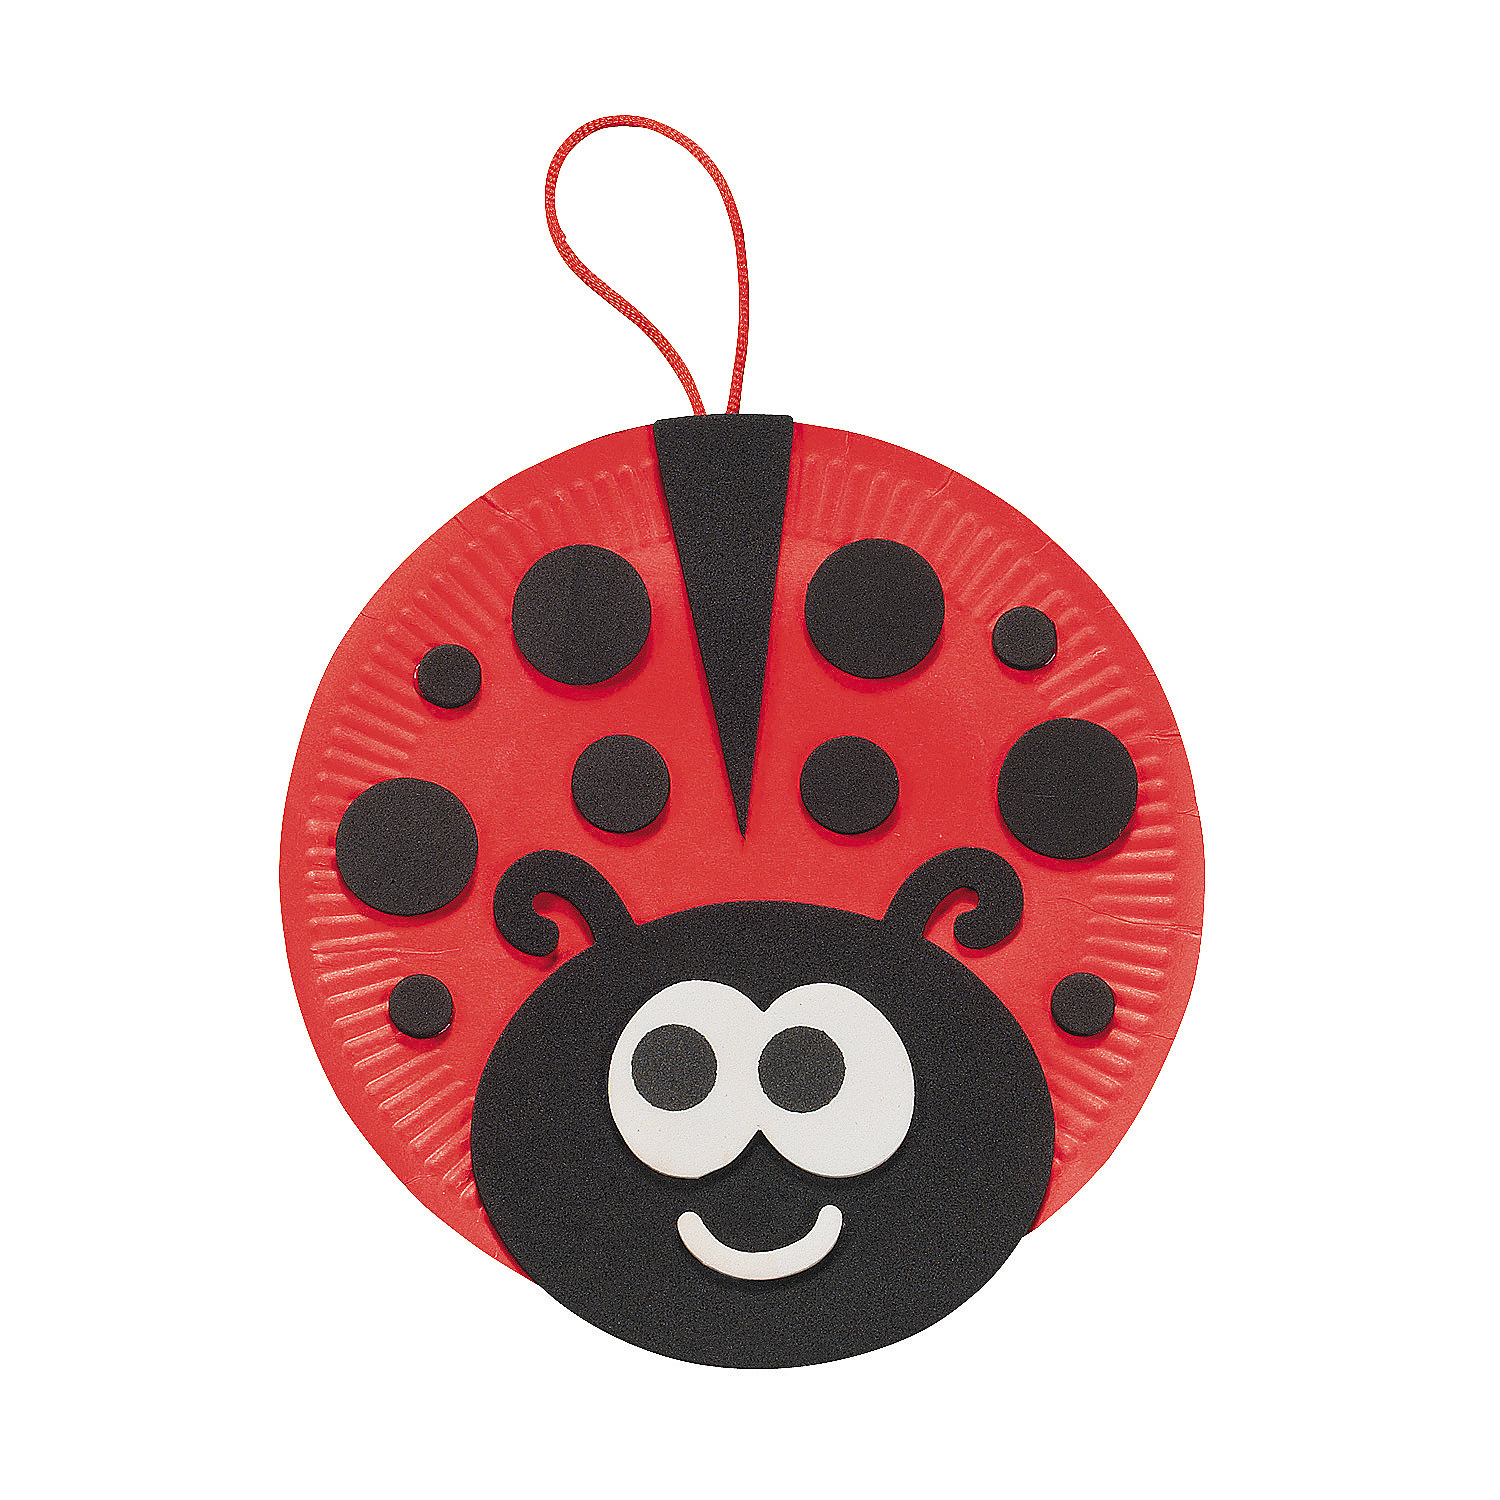 Christmas art and craft ideas thumbprint - Paper Plate Ladybug Craft Kit In 48 7508 Our Paper Plate Ladybug Craft